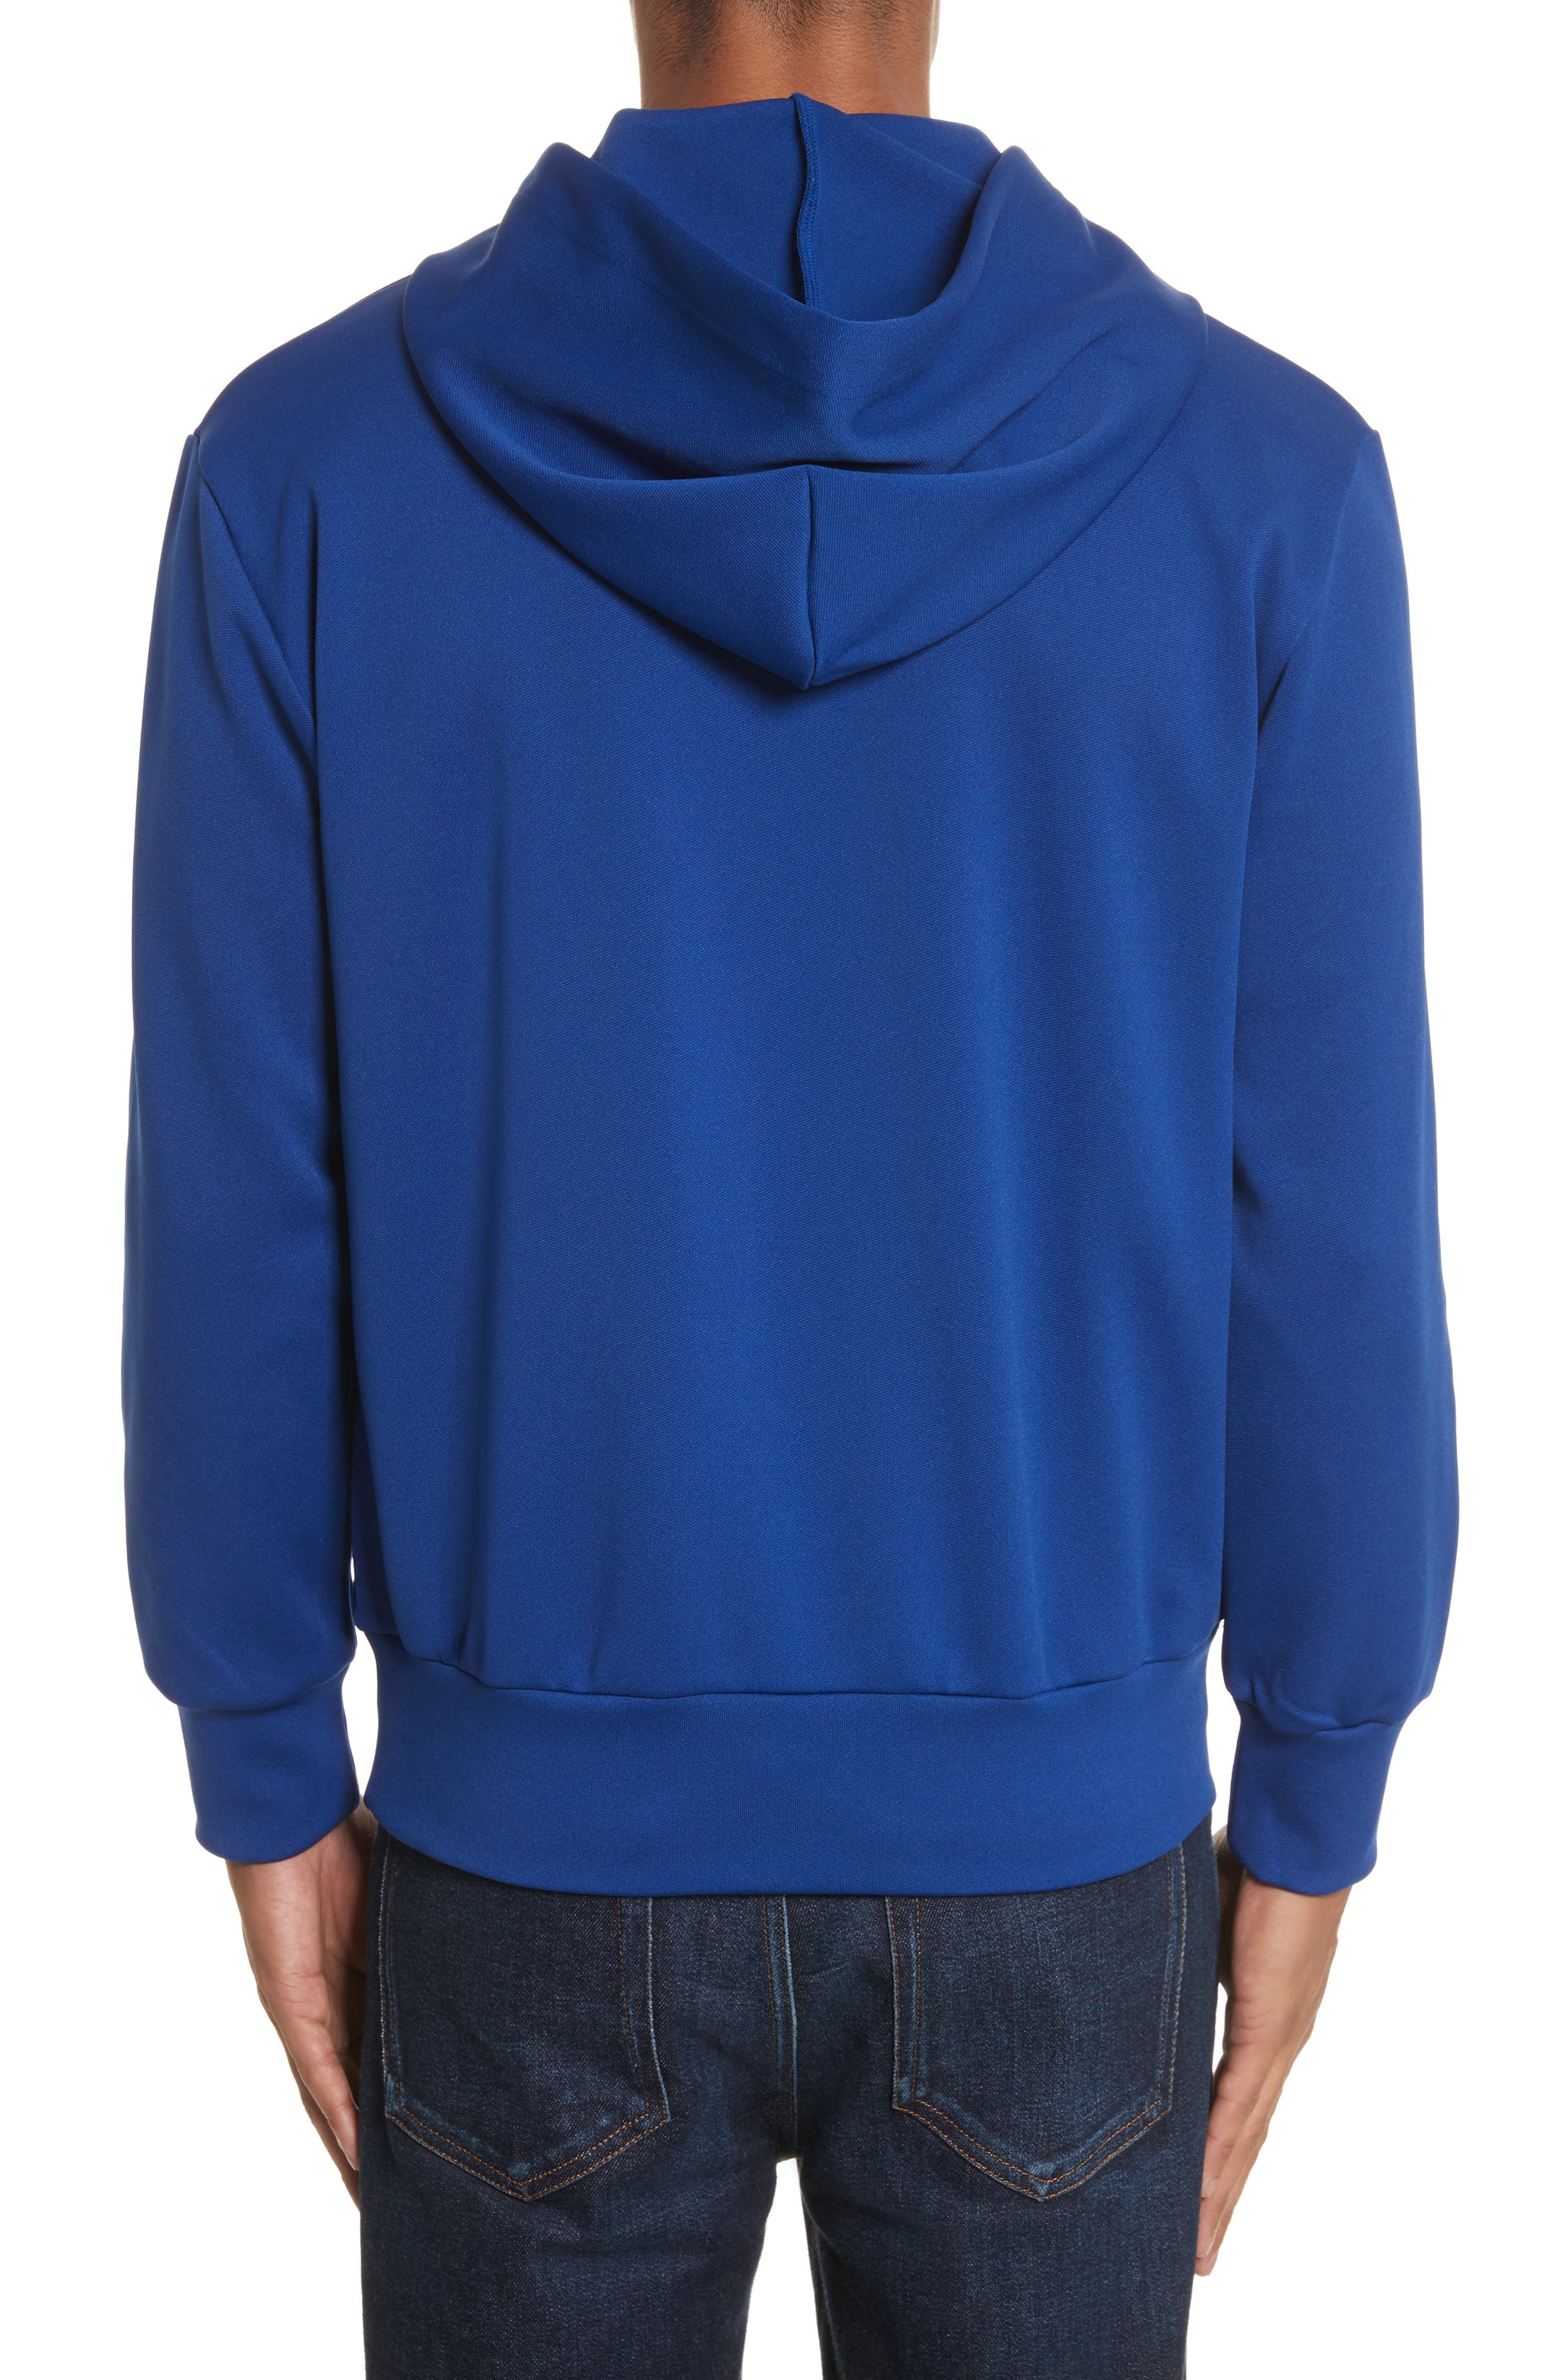 Comme des Garçons PLAY Pullover Hoodie,                             Alternate thumbnail 2, color,                             Navy